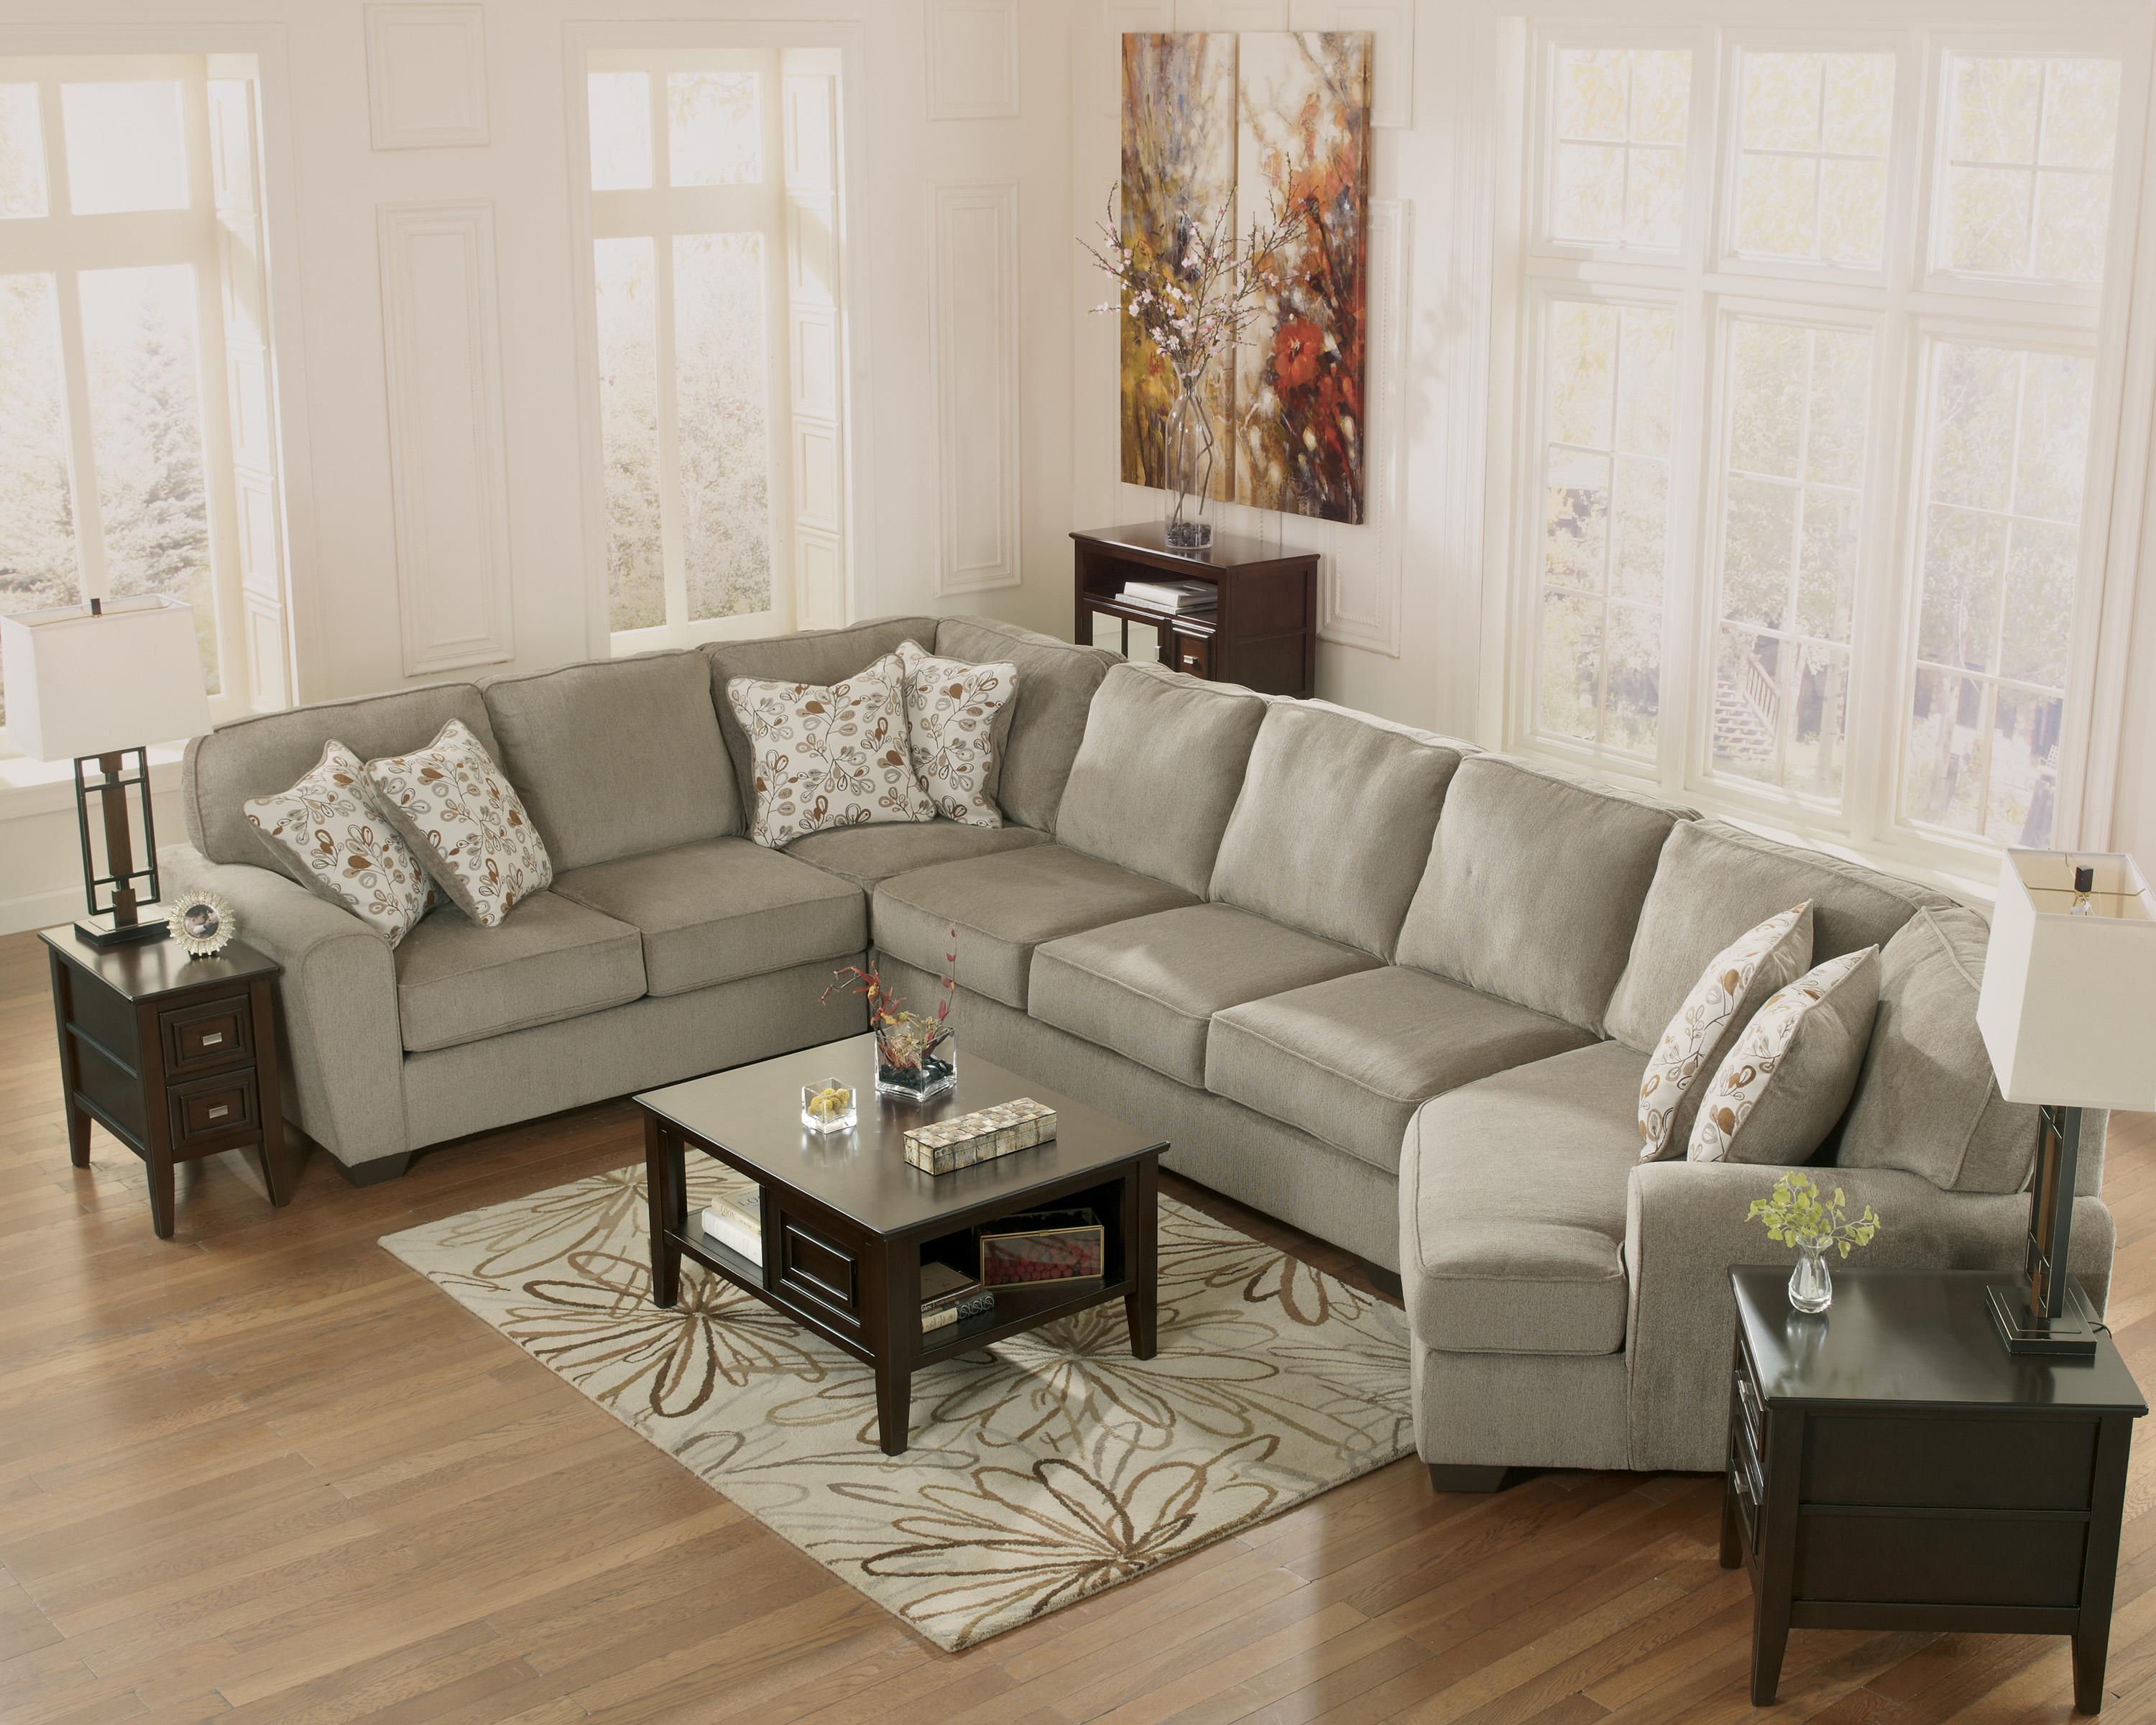 Ashley Furniture Patola Park Patina 4 Piece Sectional With Right Cuddler Olinde 39 S Furniture